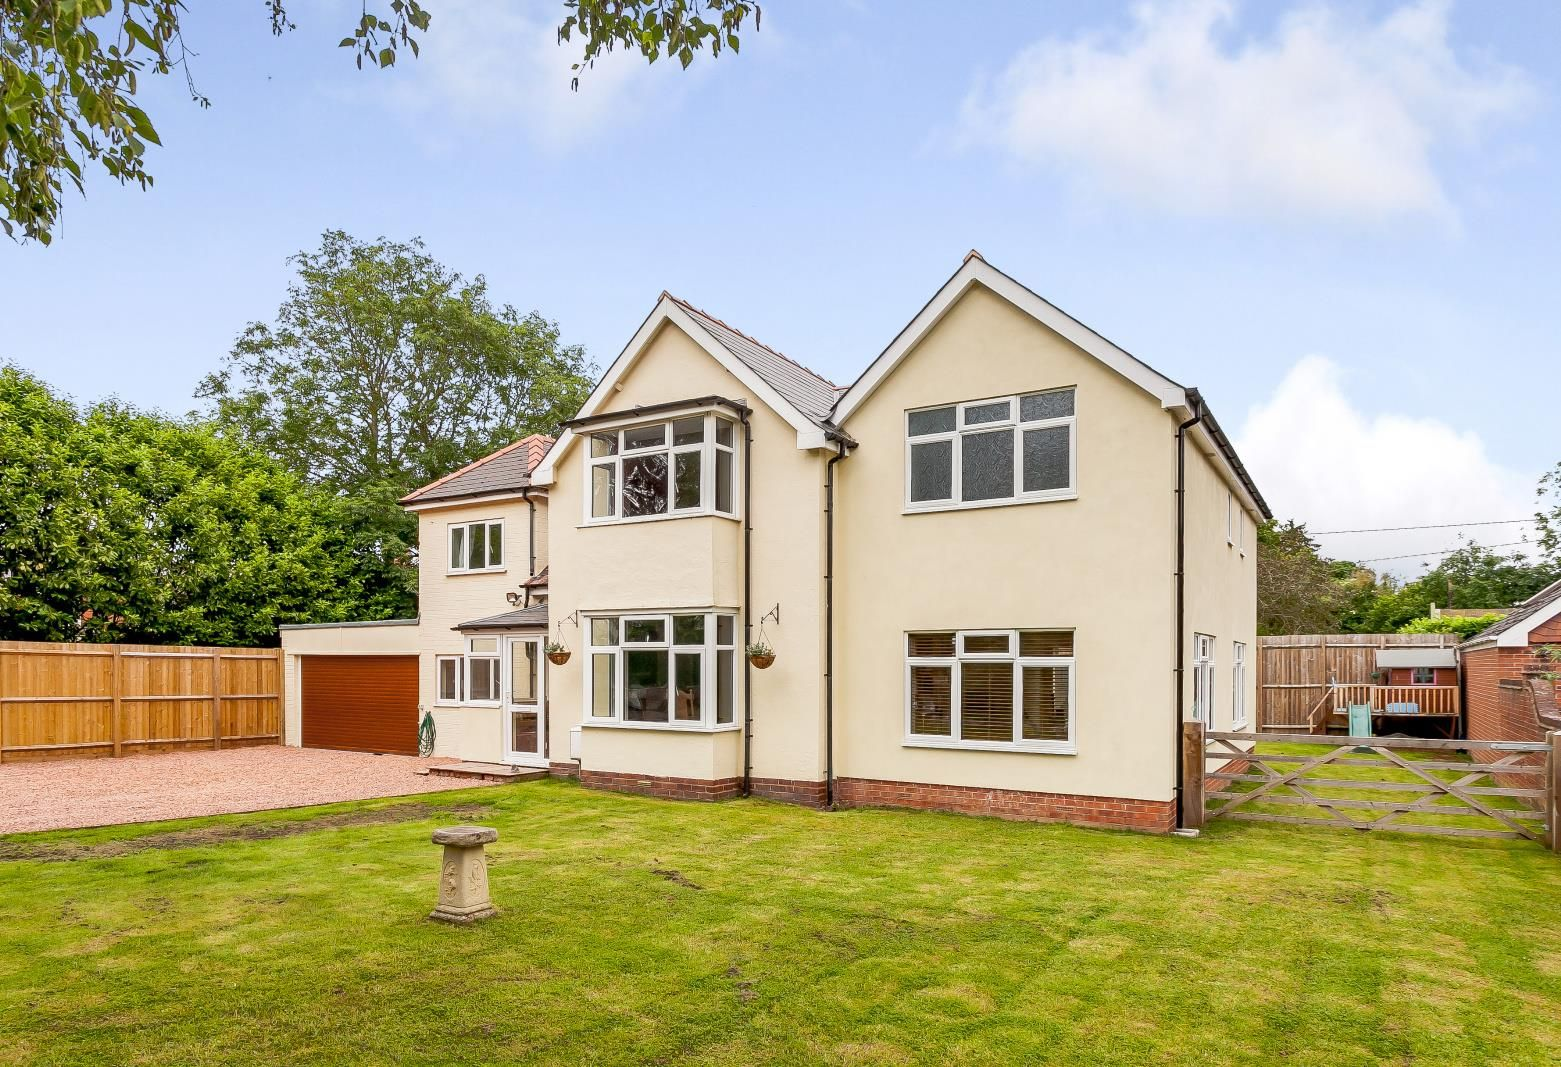 4 bed detached for sale in Kings Acre, HR4